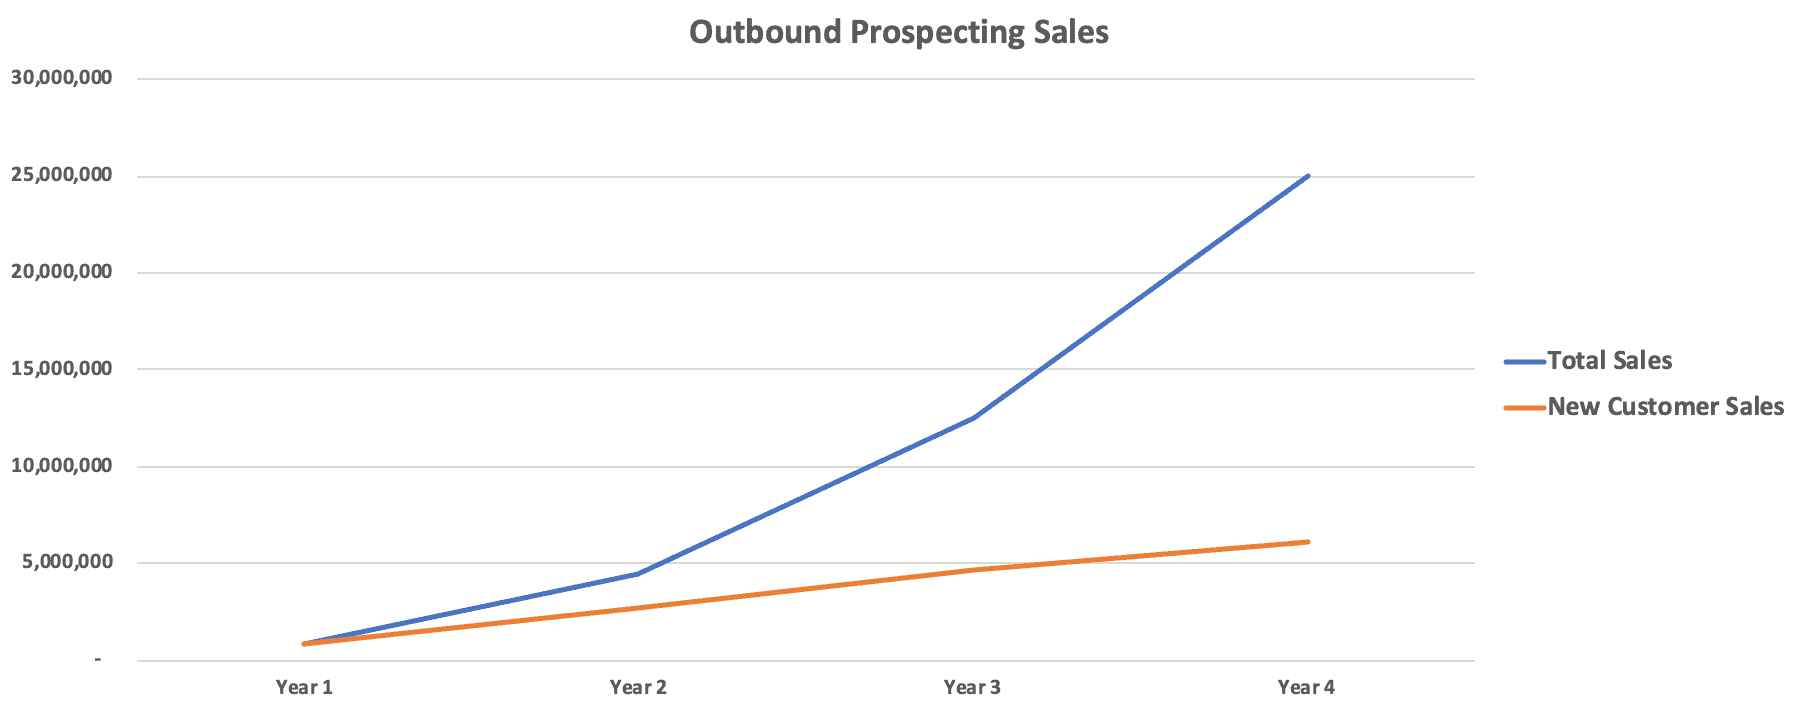 Outbound Prospecting Sales